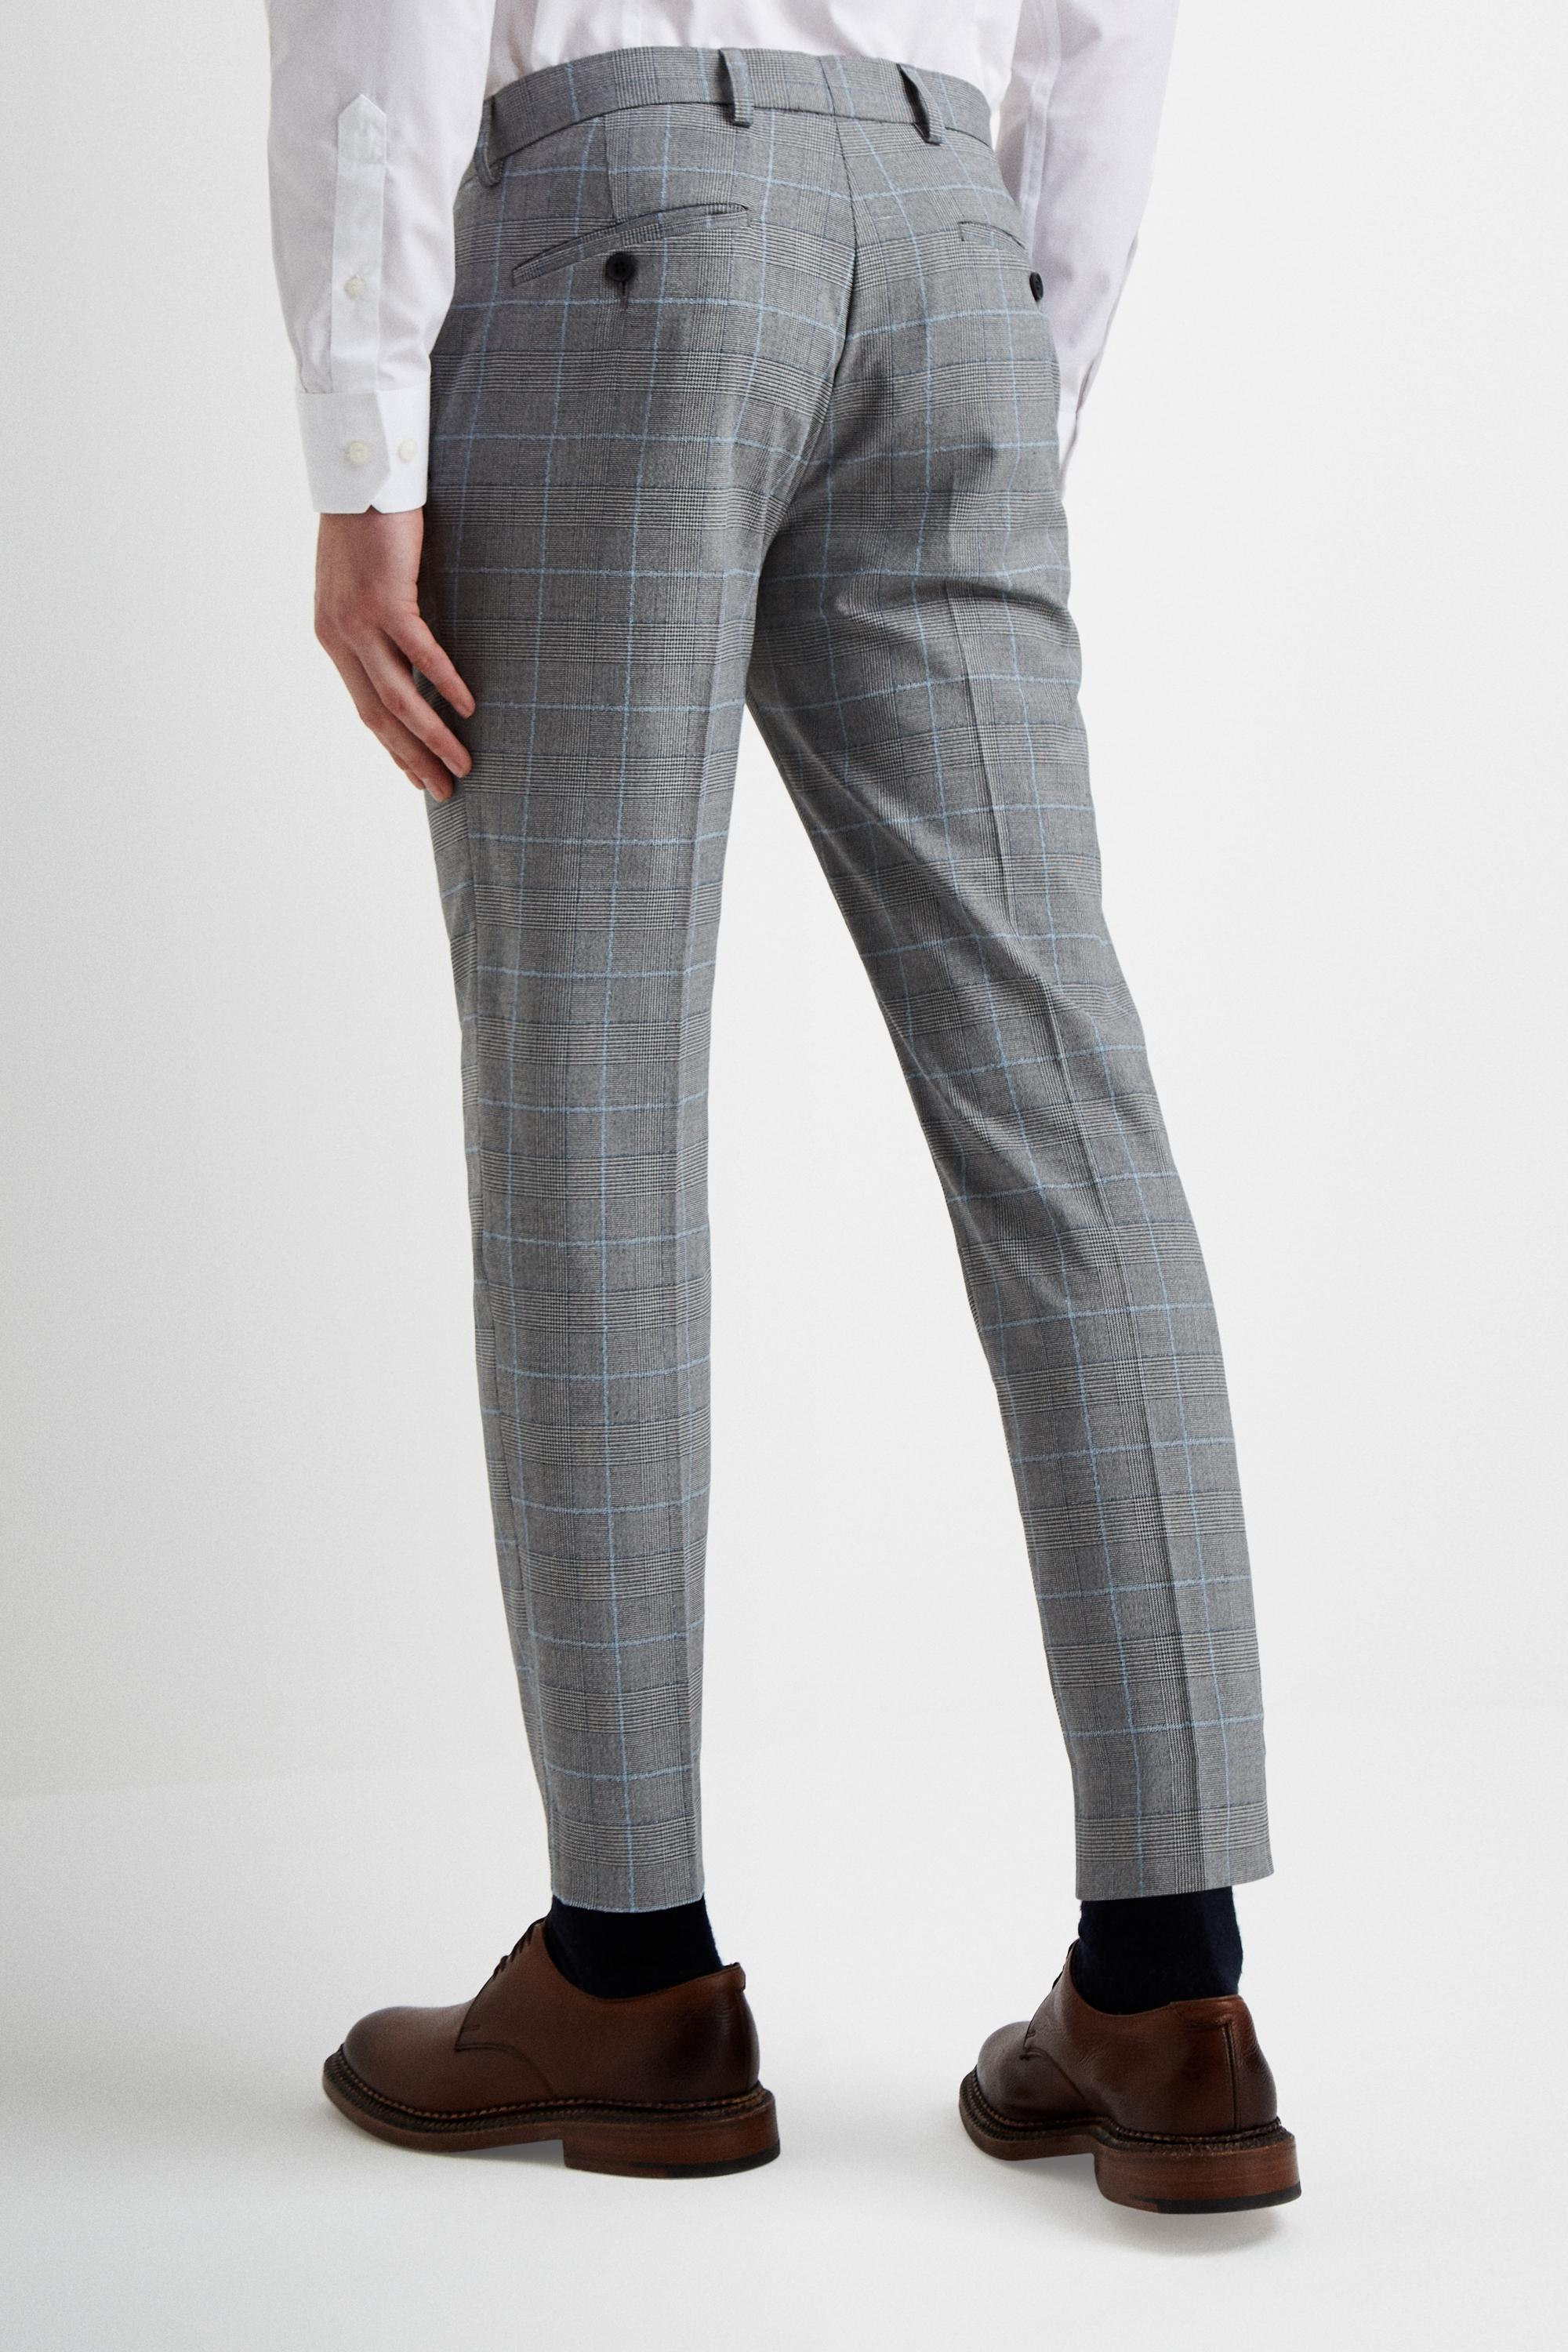 6835f494c98 Moss London - Gray Slim Fit Grey Pow With Blue Boucle Windowpane Cropped  Trousers for Men. View fullscreen